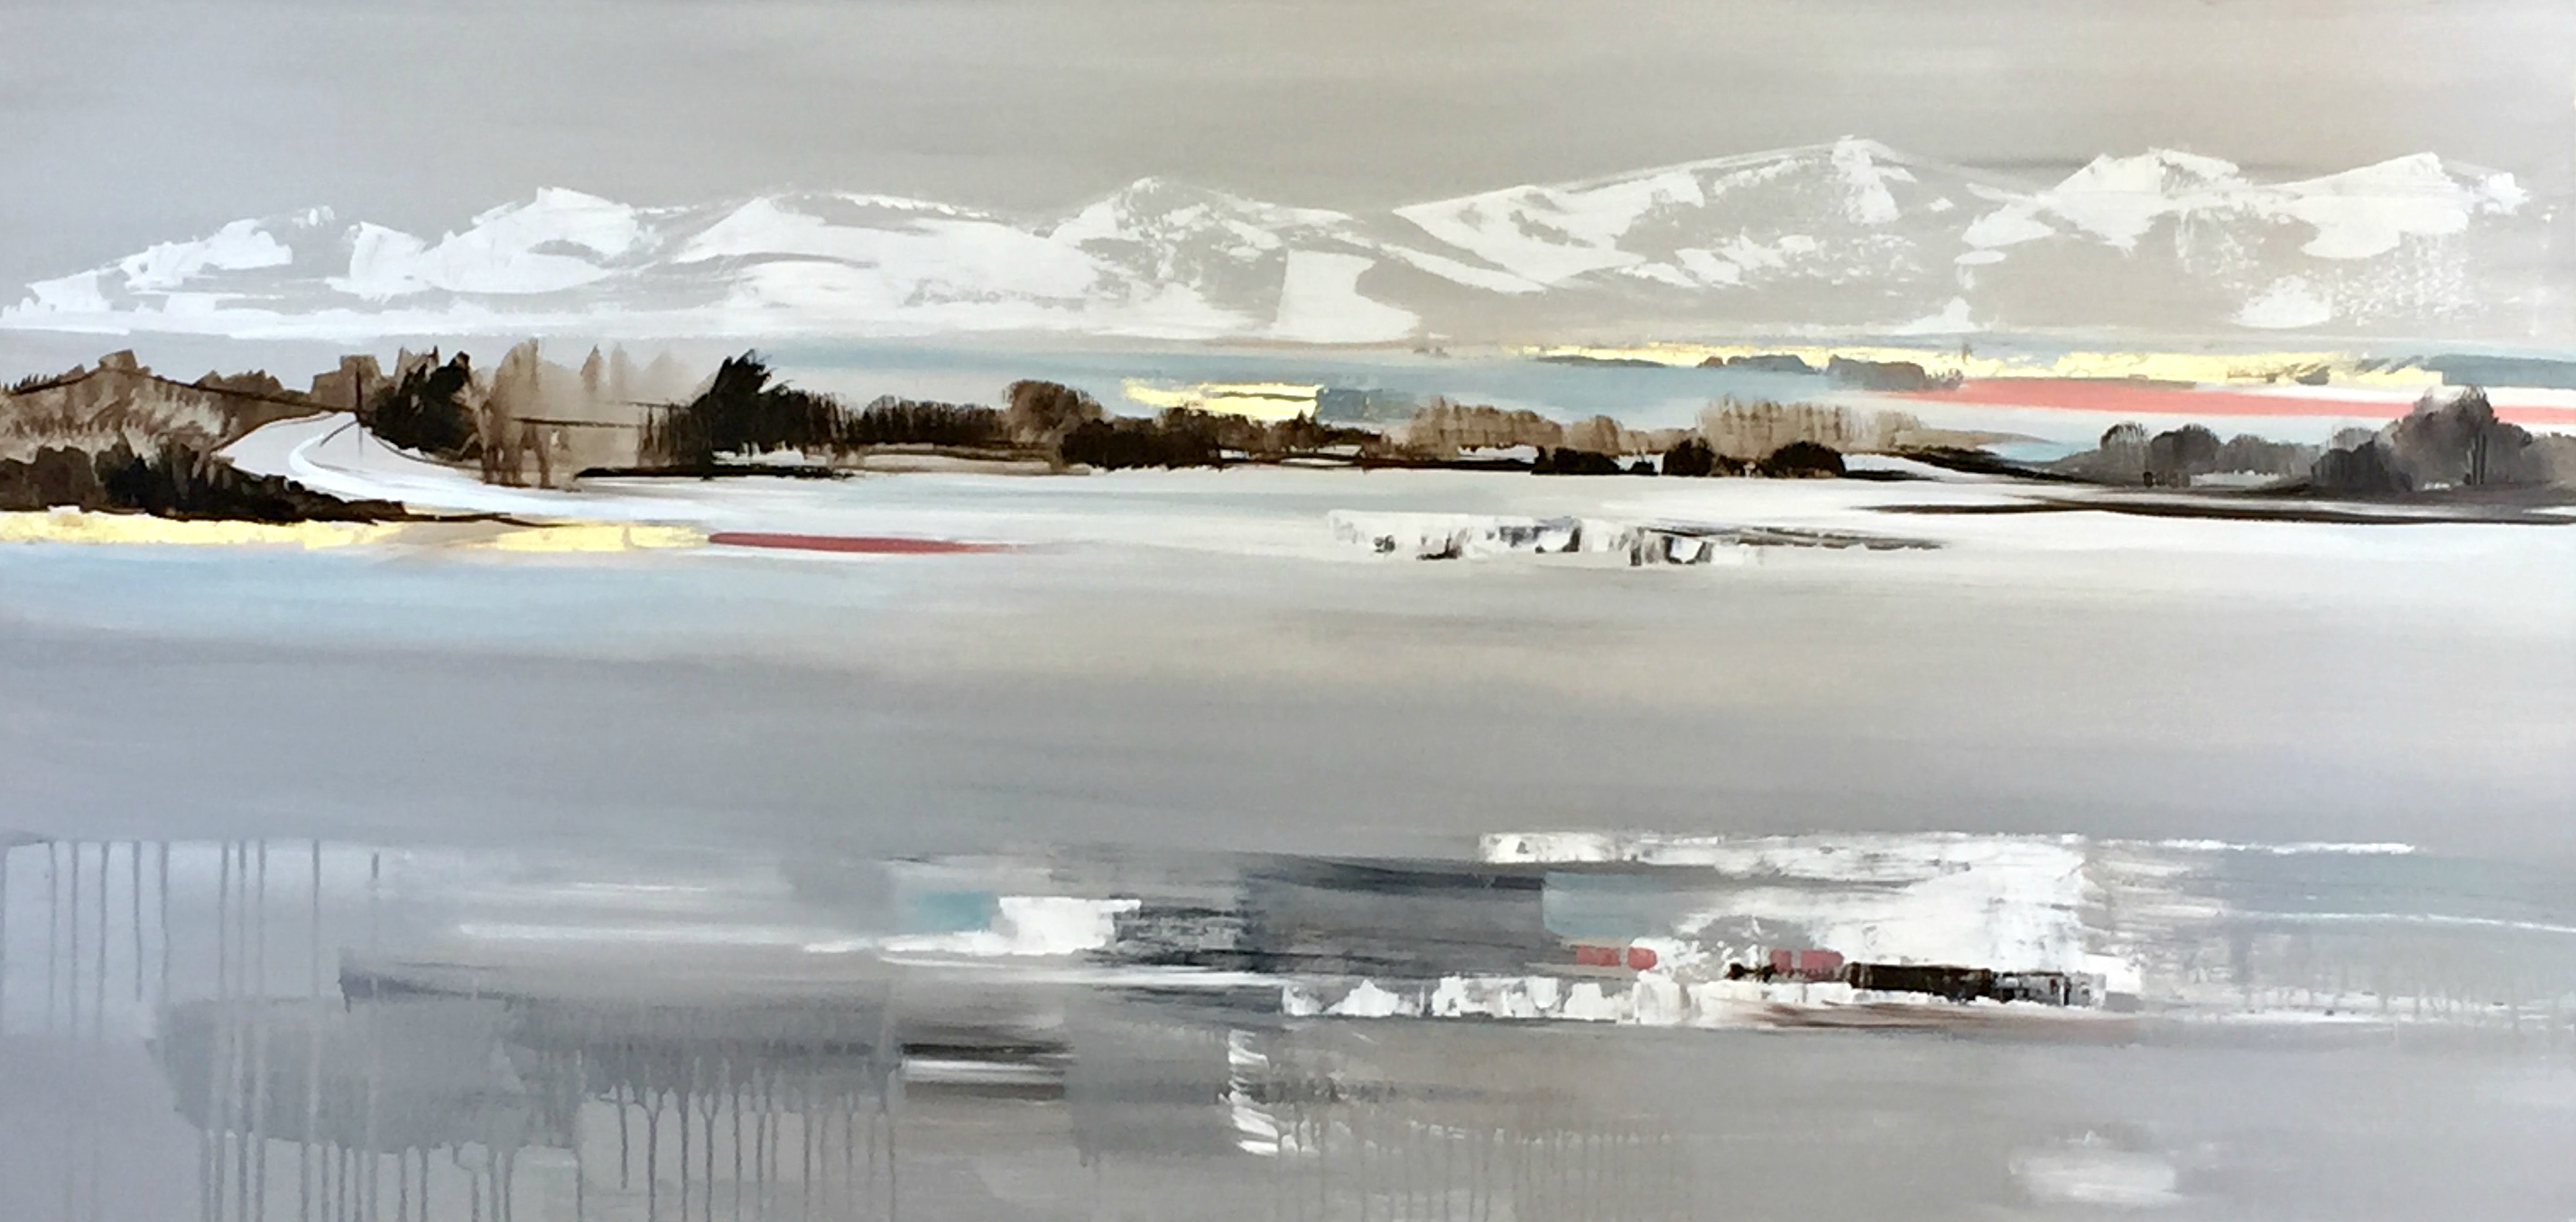 Snow Capped Mountains, acrylic painting by Valeria Mravyan | Effusion Art Gallery + Cast Glass Studio, Invermere BC